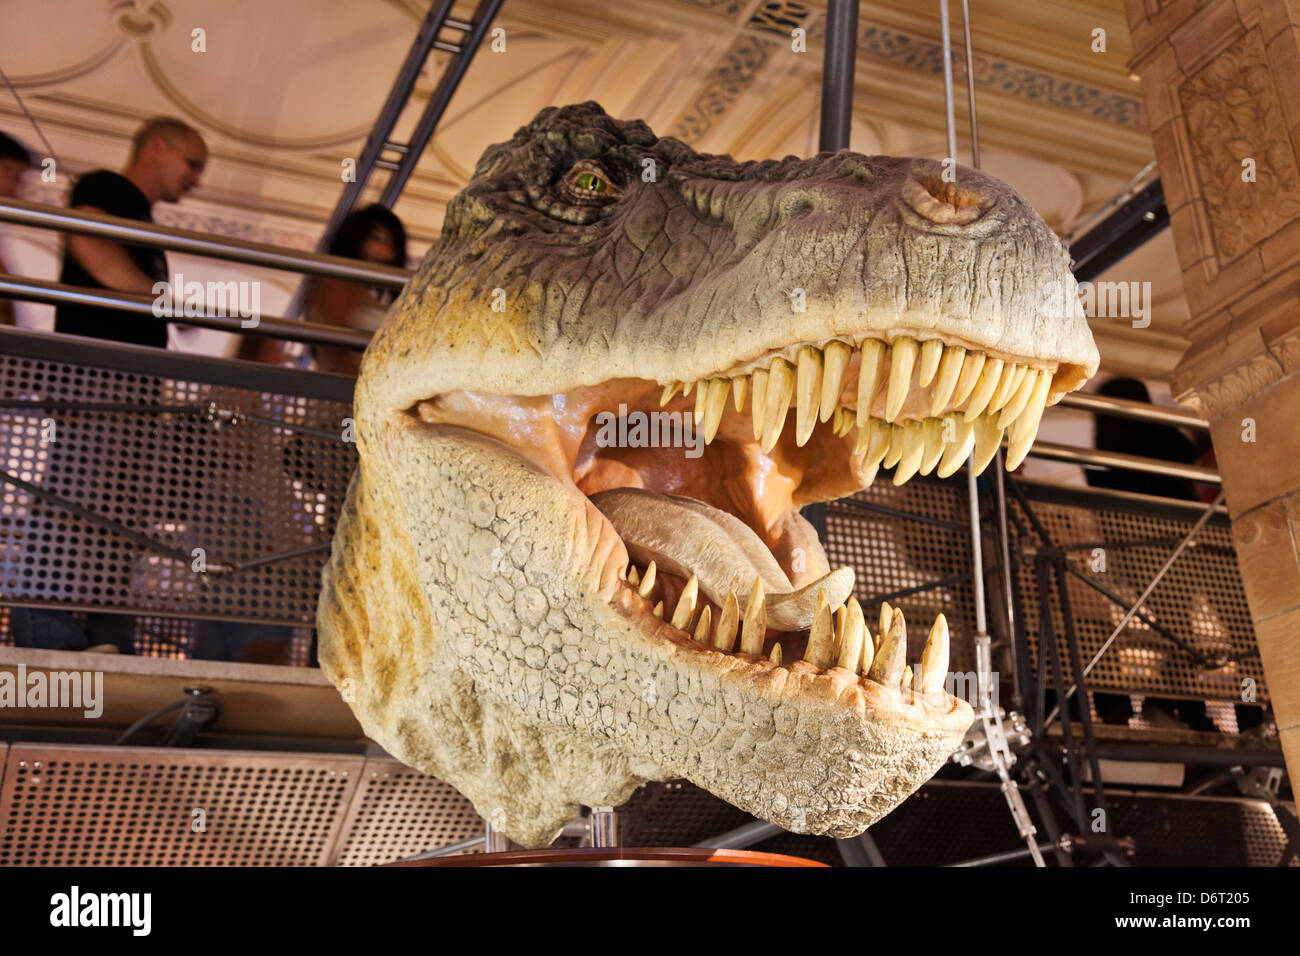 UK, London, Kensington, Natural History Museum, T-Rex Dinosaur exhibit - Stock Image